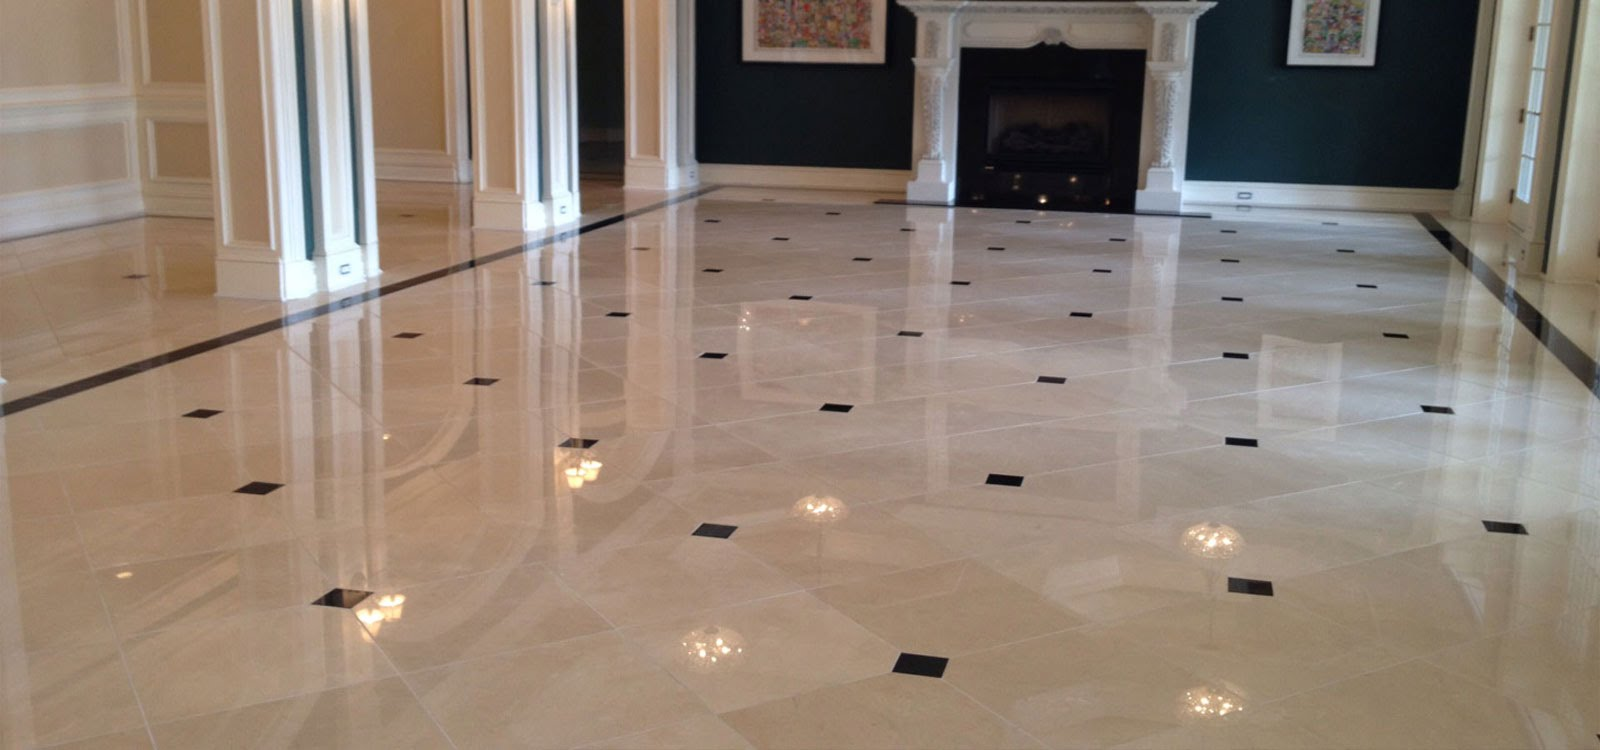 Blog  Vitrified Tiles  Some Things to Know